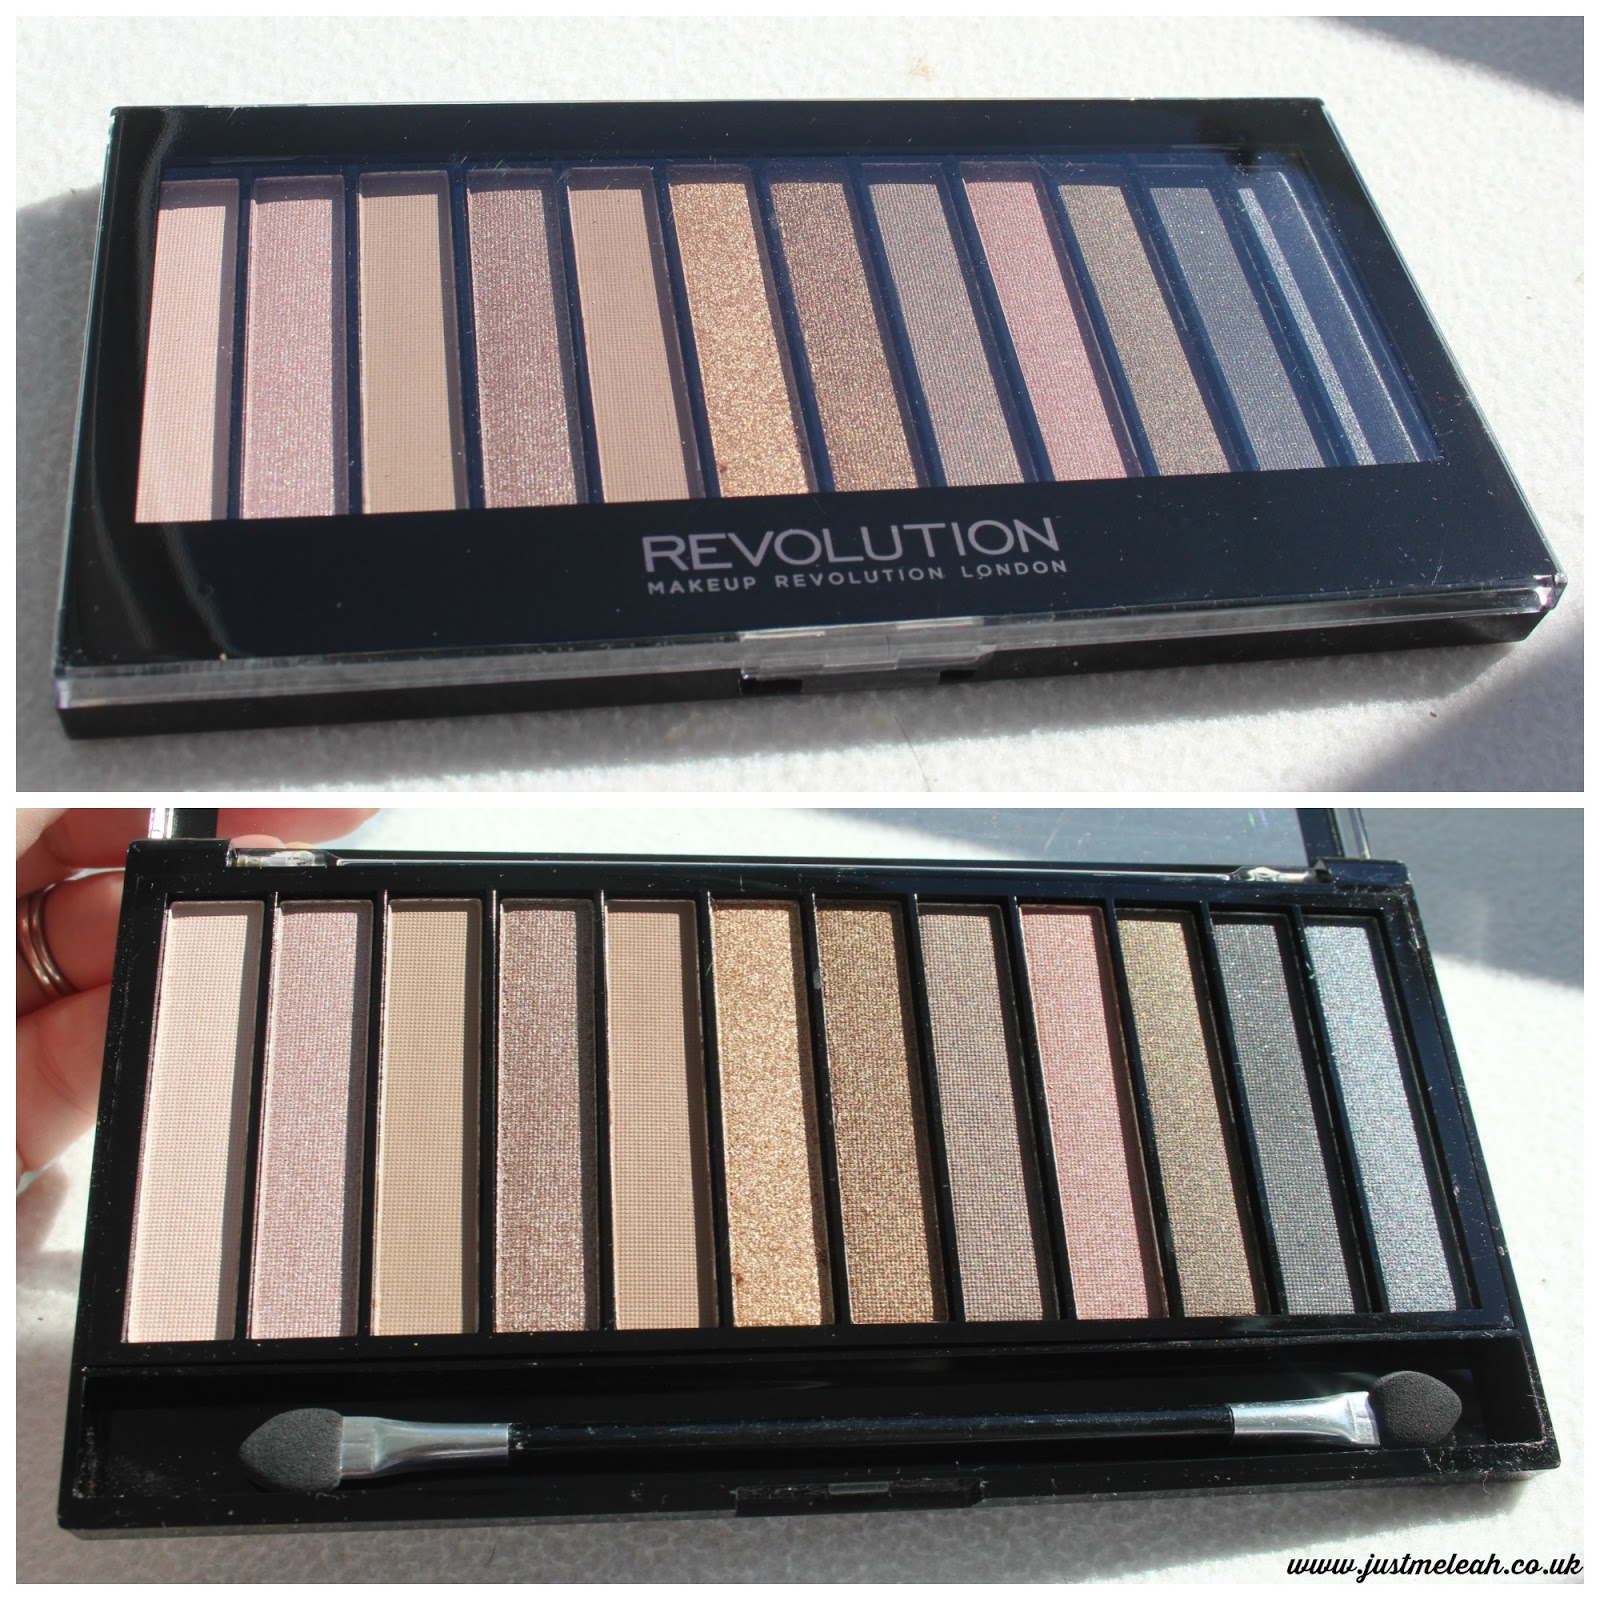 Makeup Revolution Iconic Palette 1 - Urban Decay Naked palette dupe